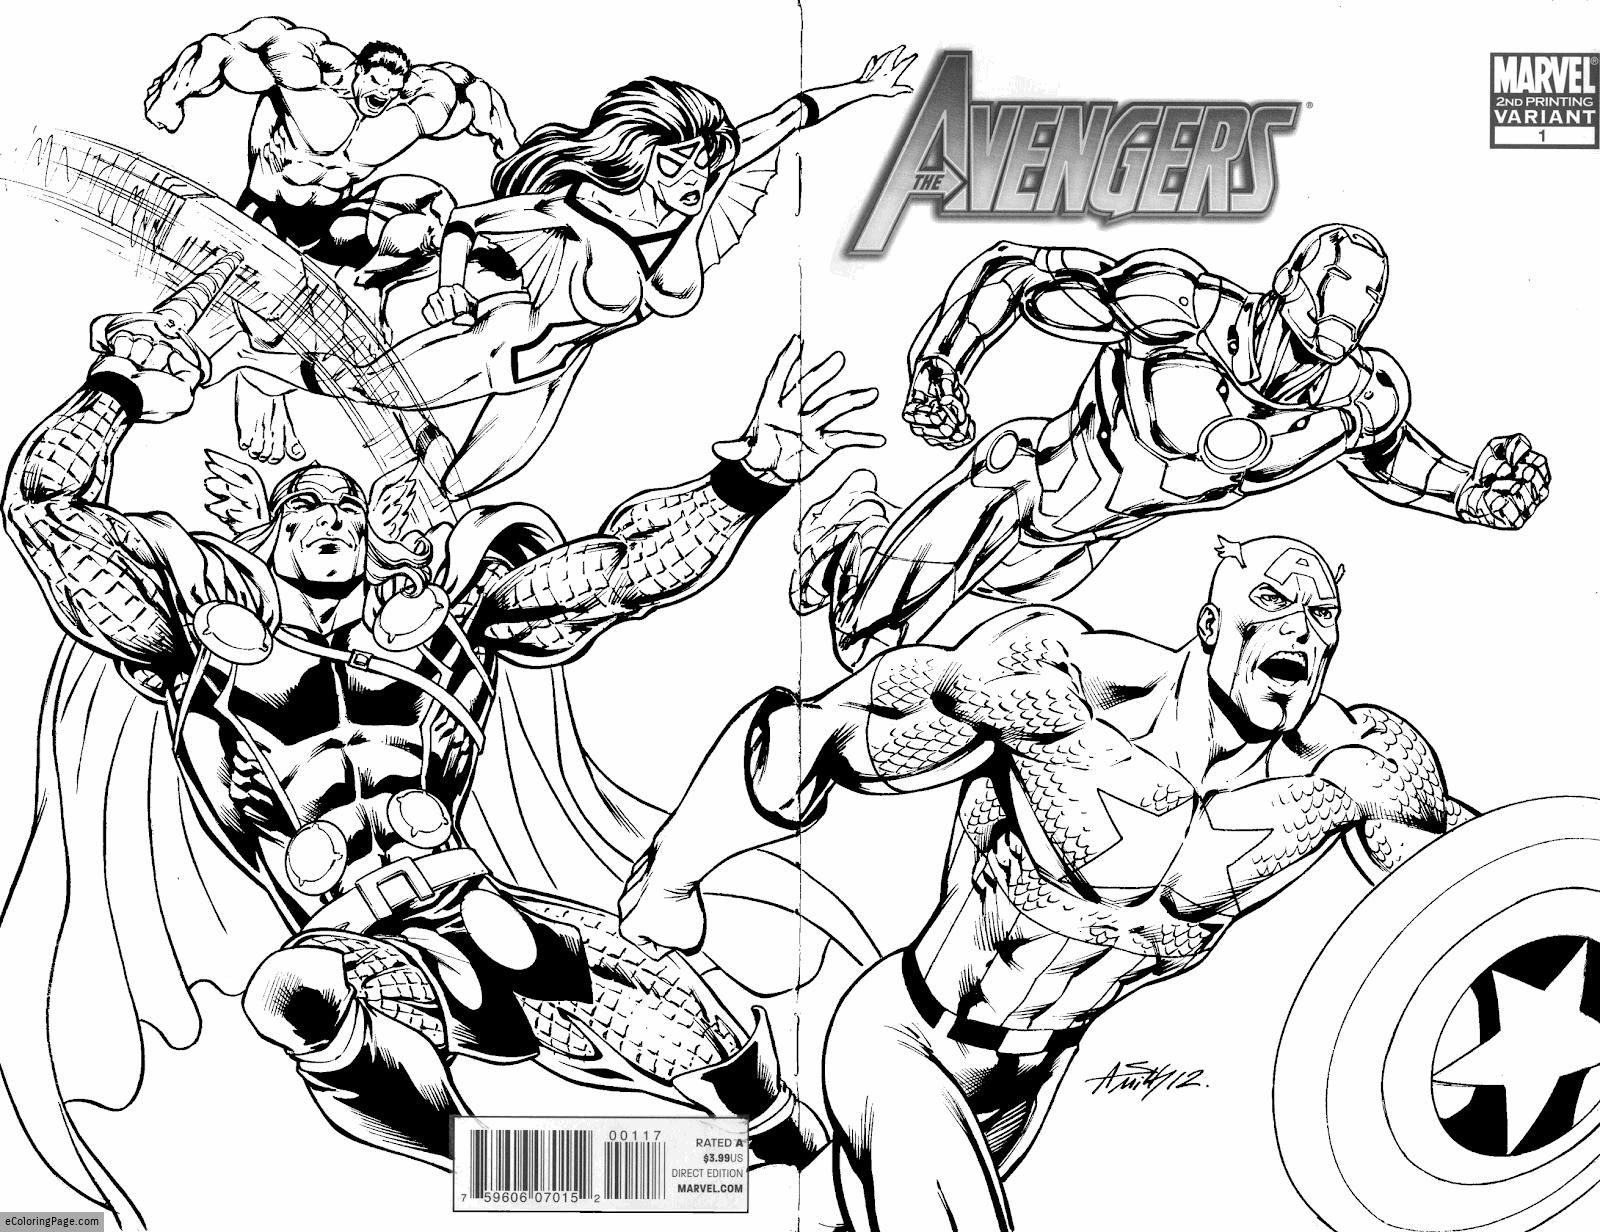 Marvel Superheroes Avengers In Action Coloring Page For Kids Printable Superhero Coloring Pages Avengers Coloring Avengers Coloring Pages